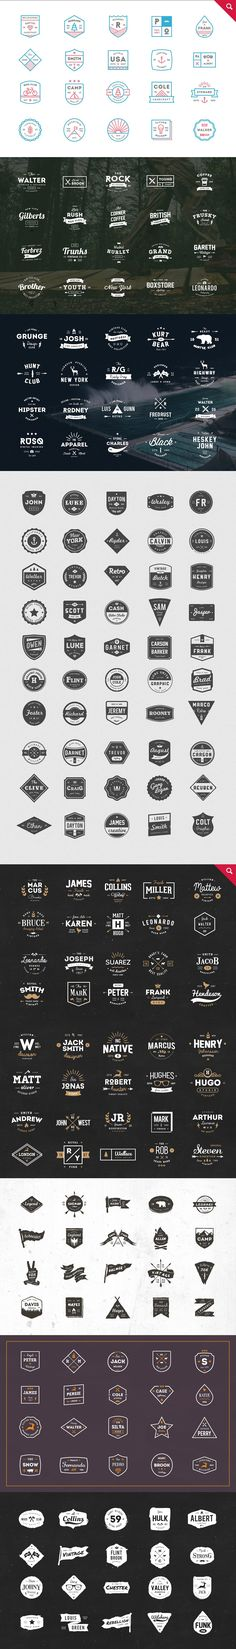 465 Logos Bundle - 90% off by vuuuds on @creativemarket